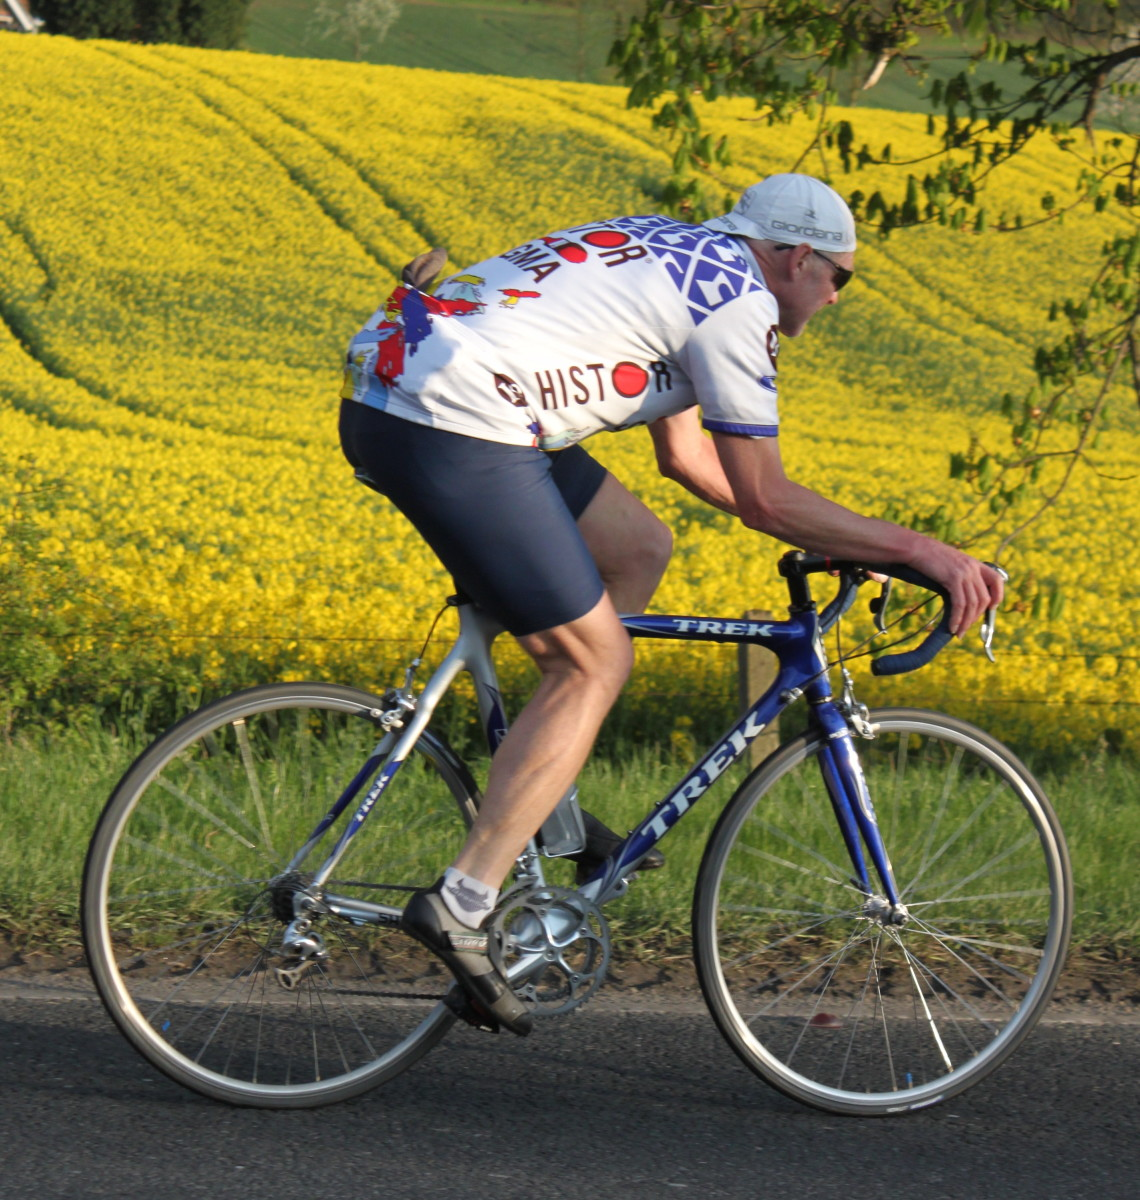 Make the most of summer days and get some long slow distance training in to improve cycling endurance